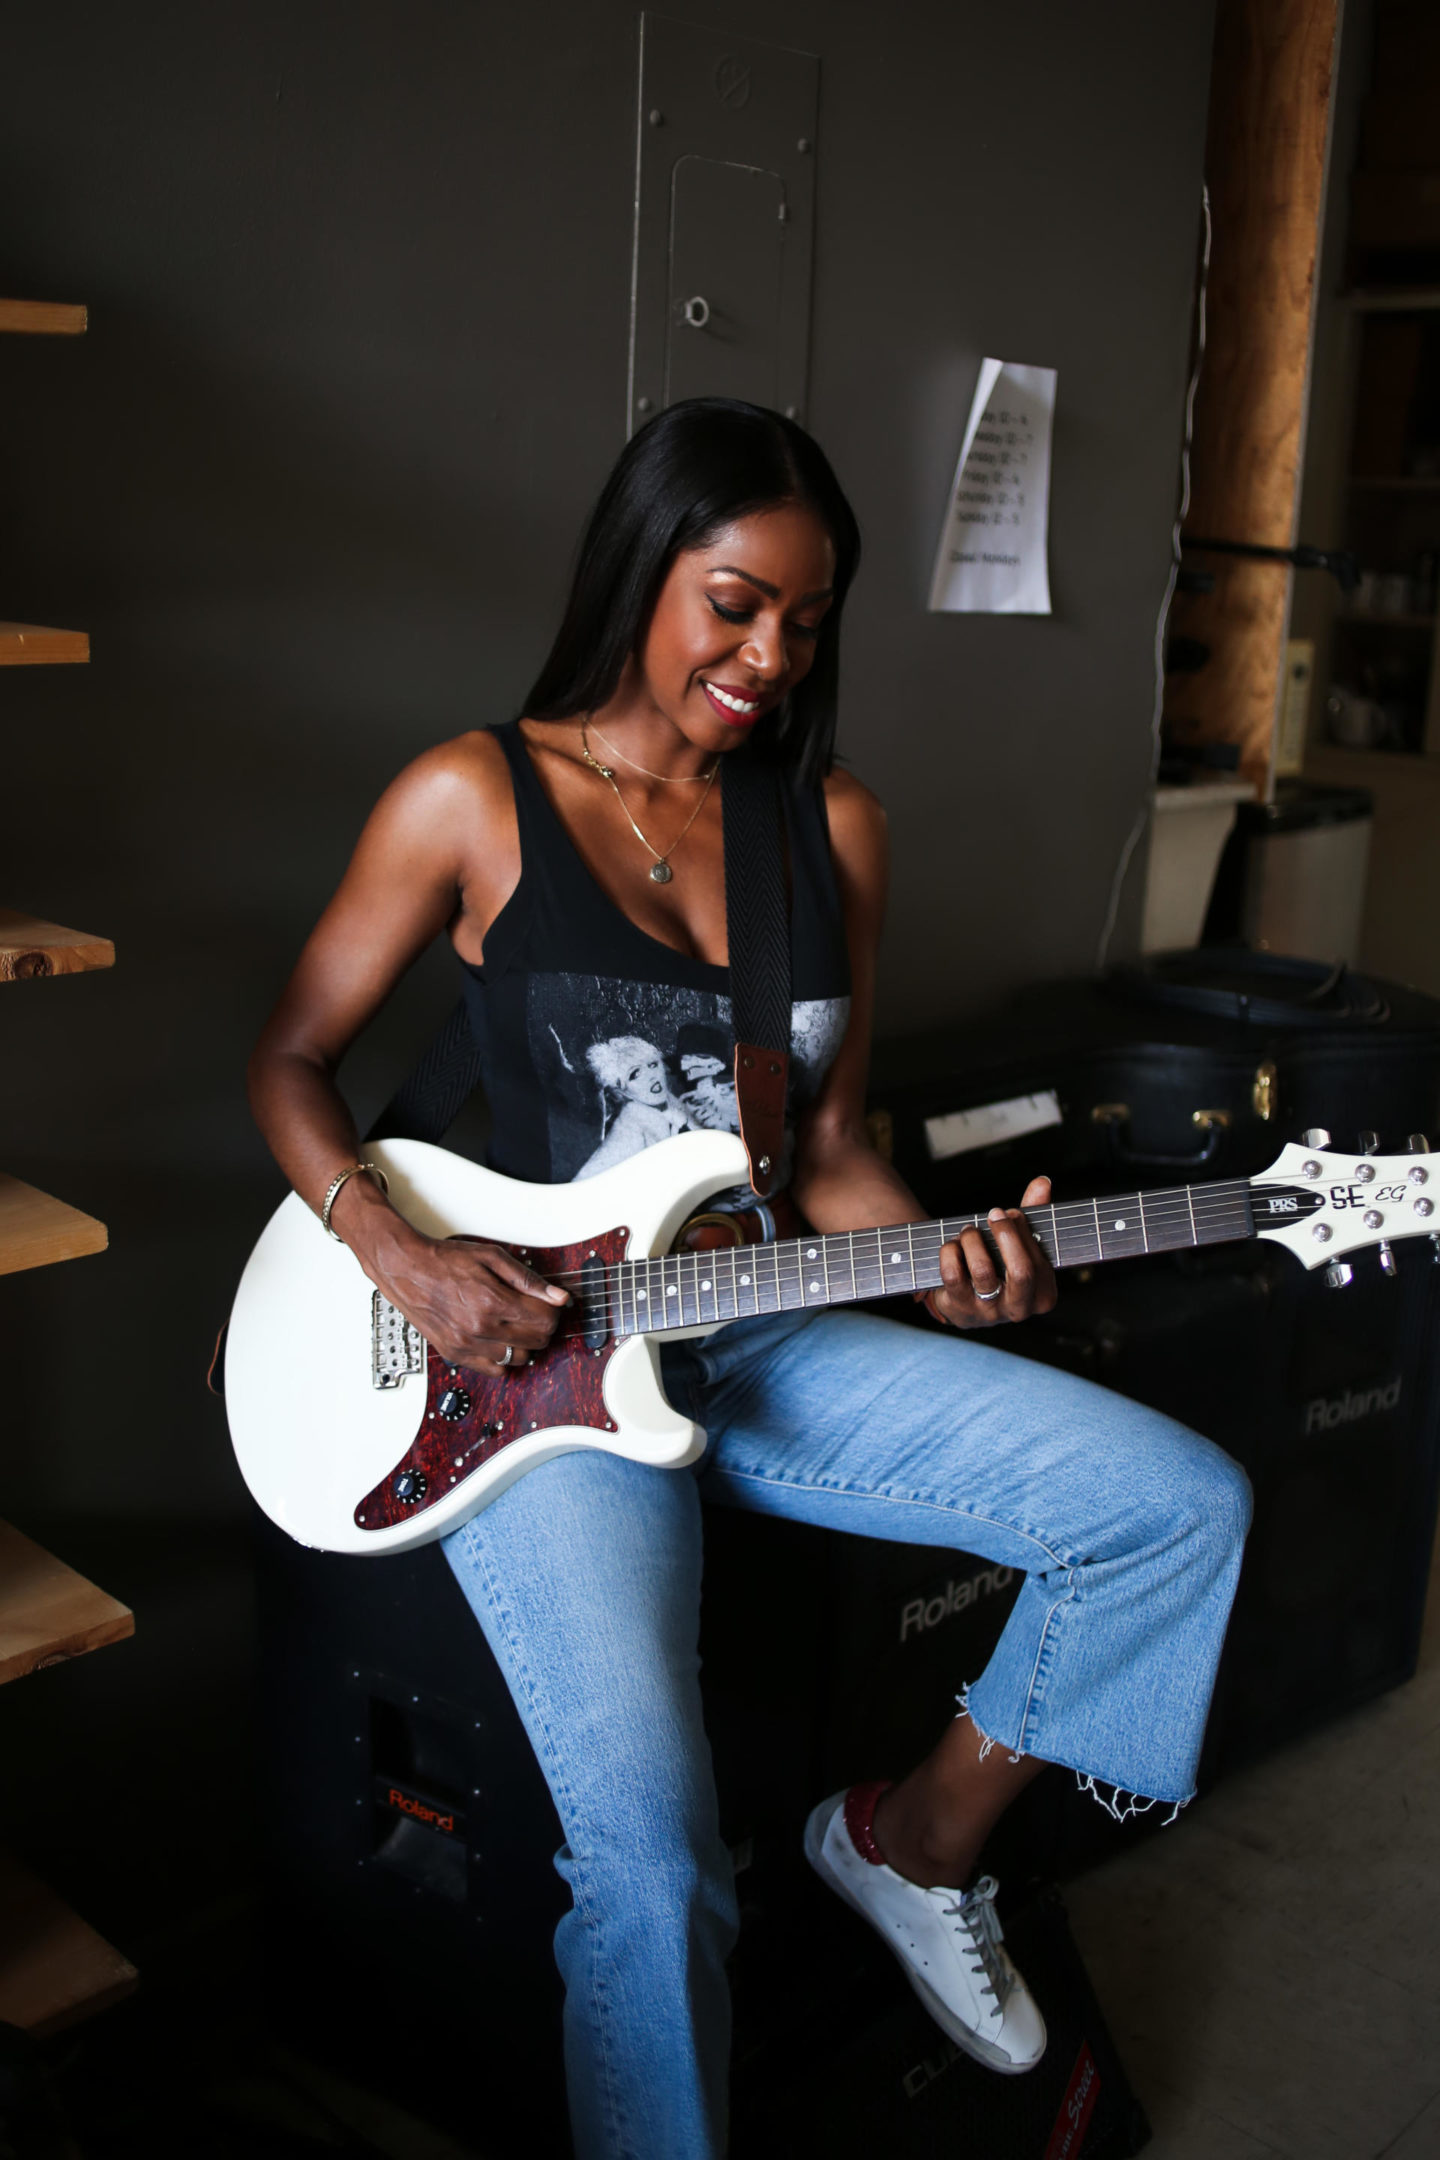 Dominique Baker Playing Electric Guitar at Metro Music